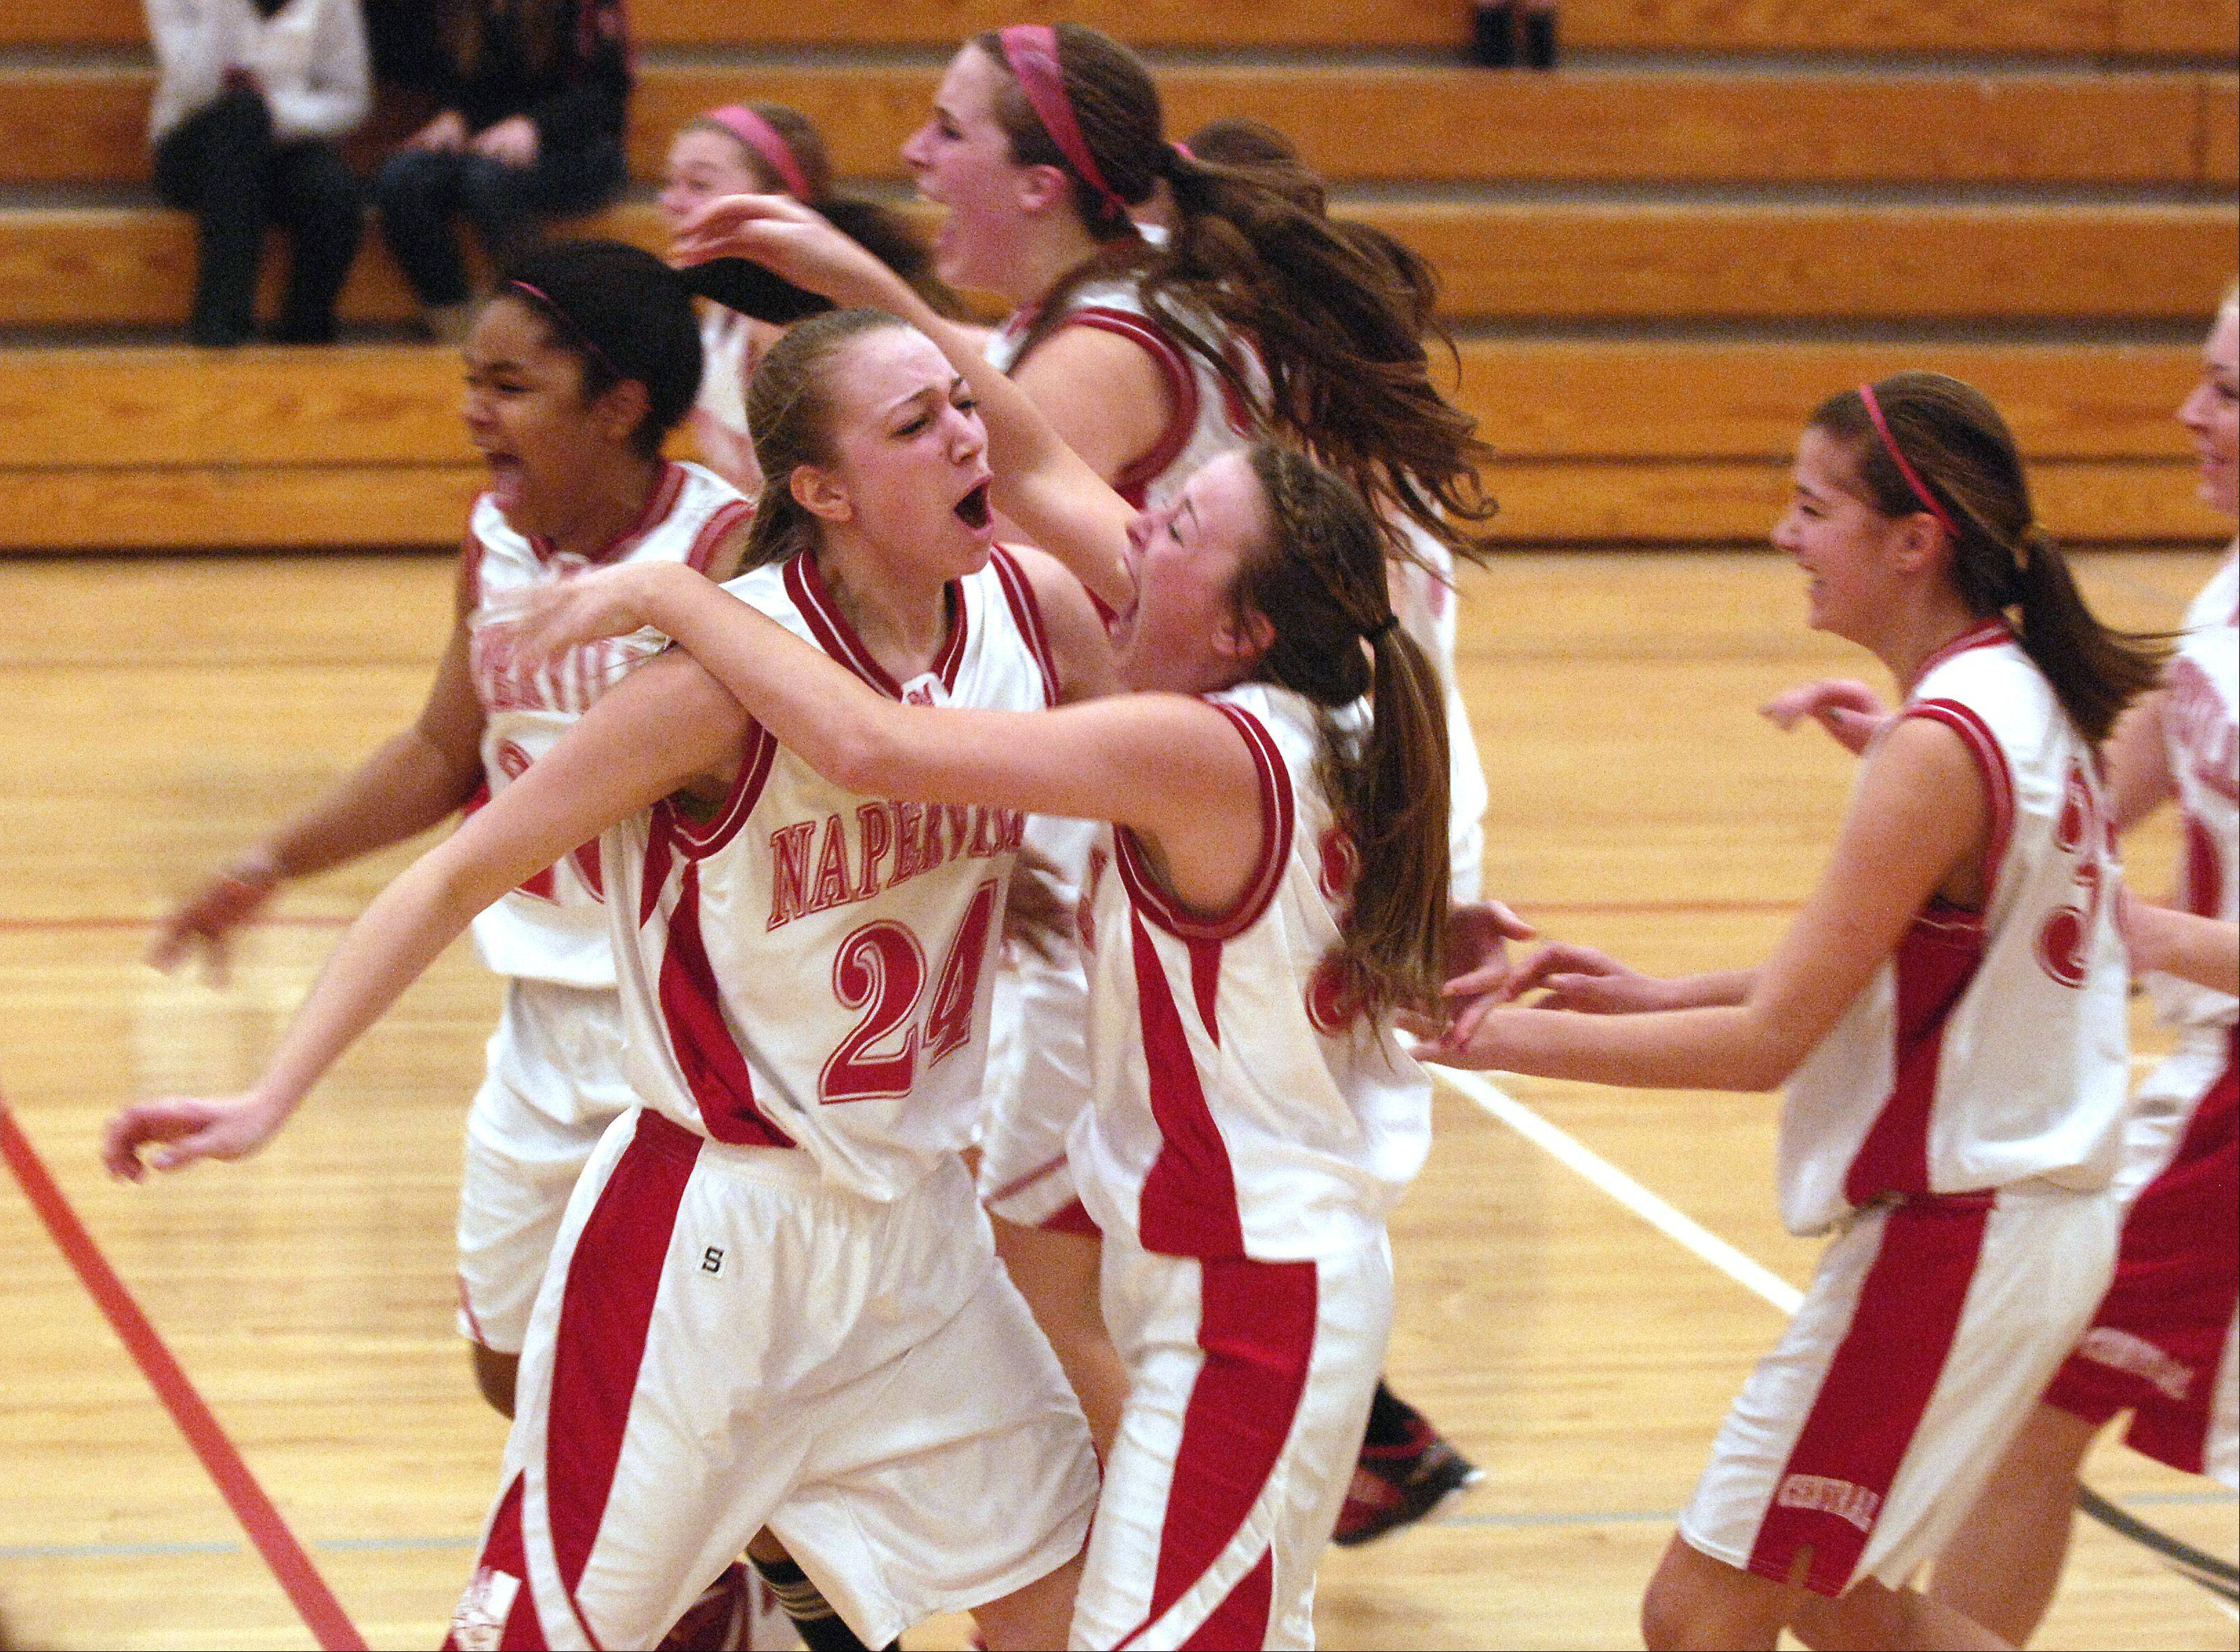 Images: Naperville Central vs. Benet Academy, girls basketball